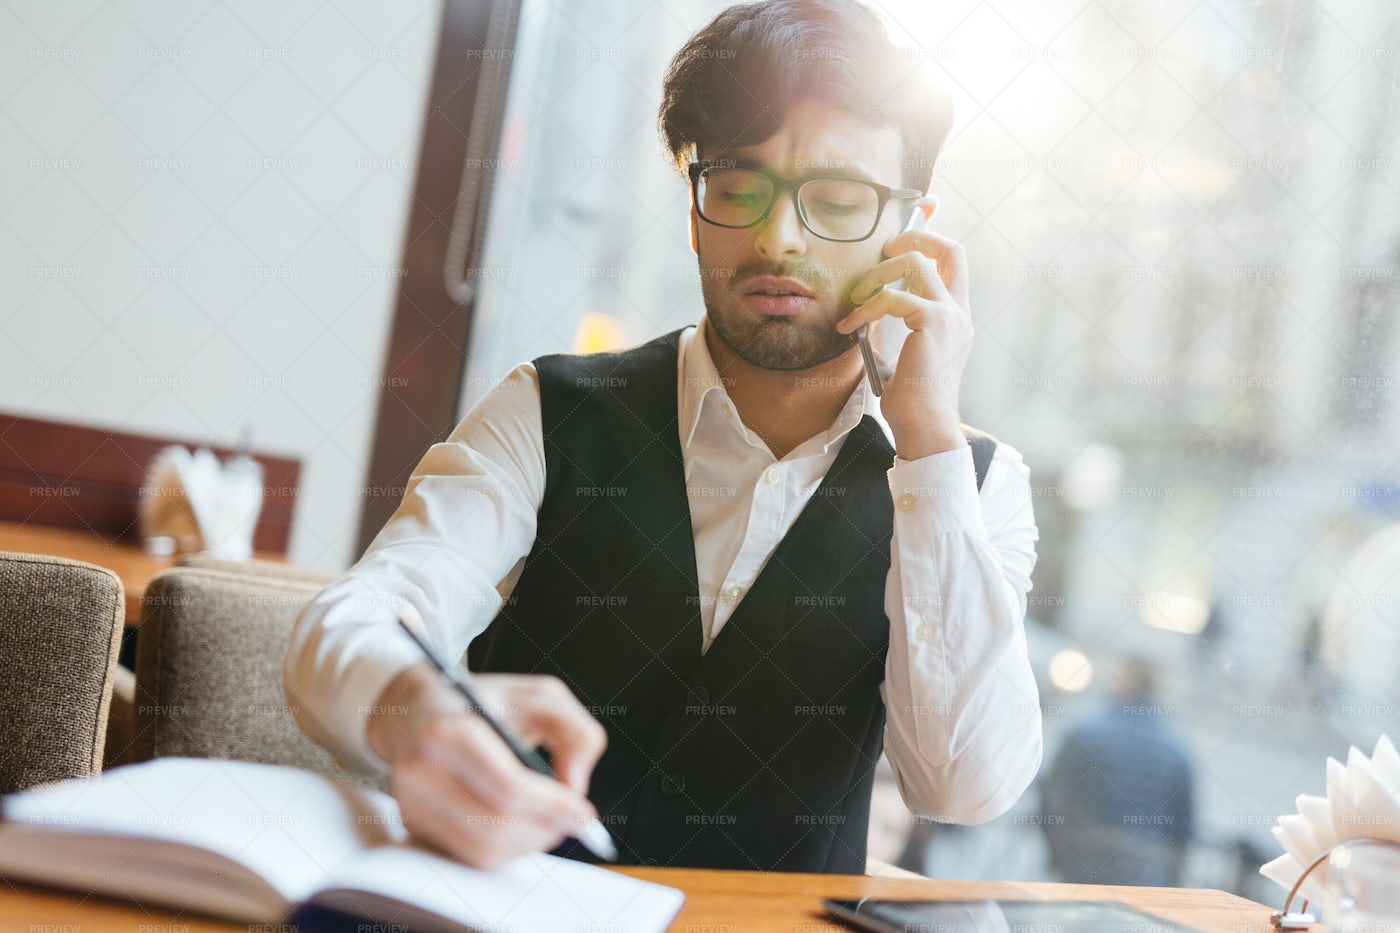 Mobility In Business: Stock Photos